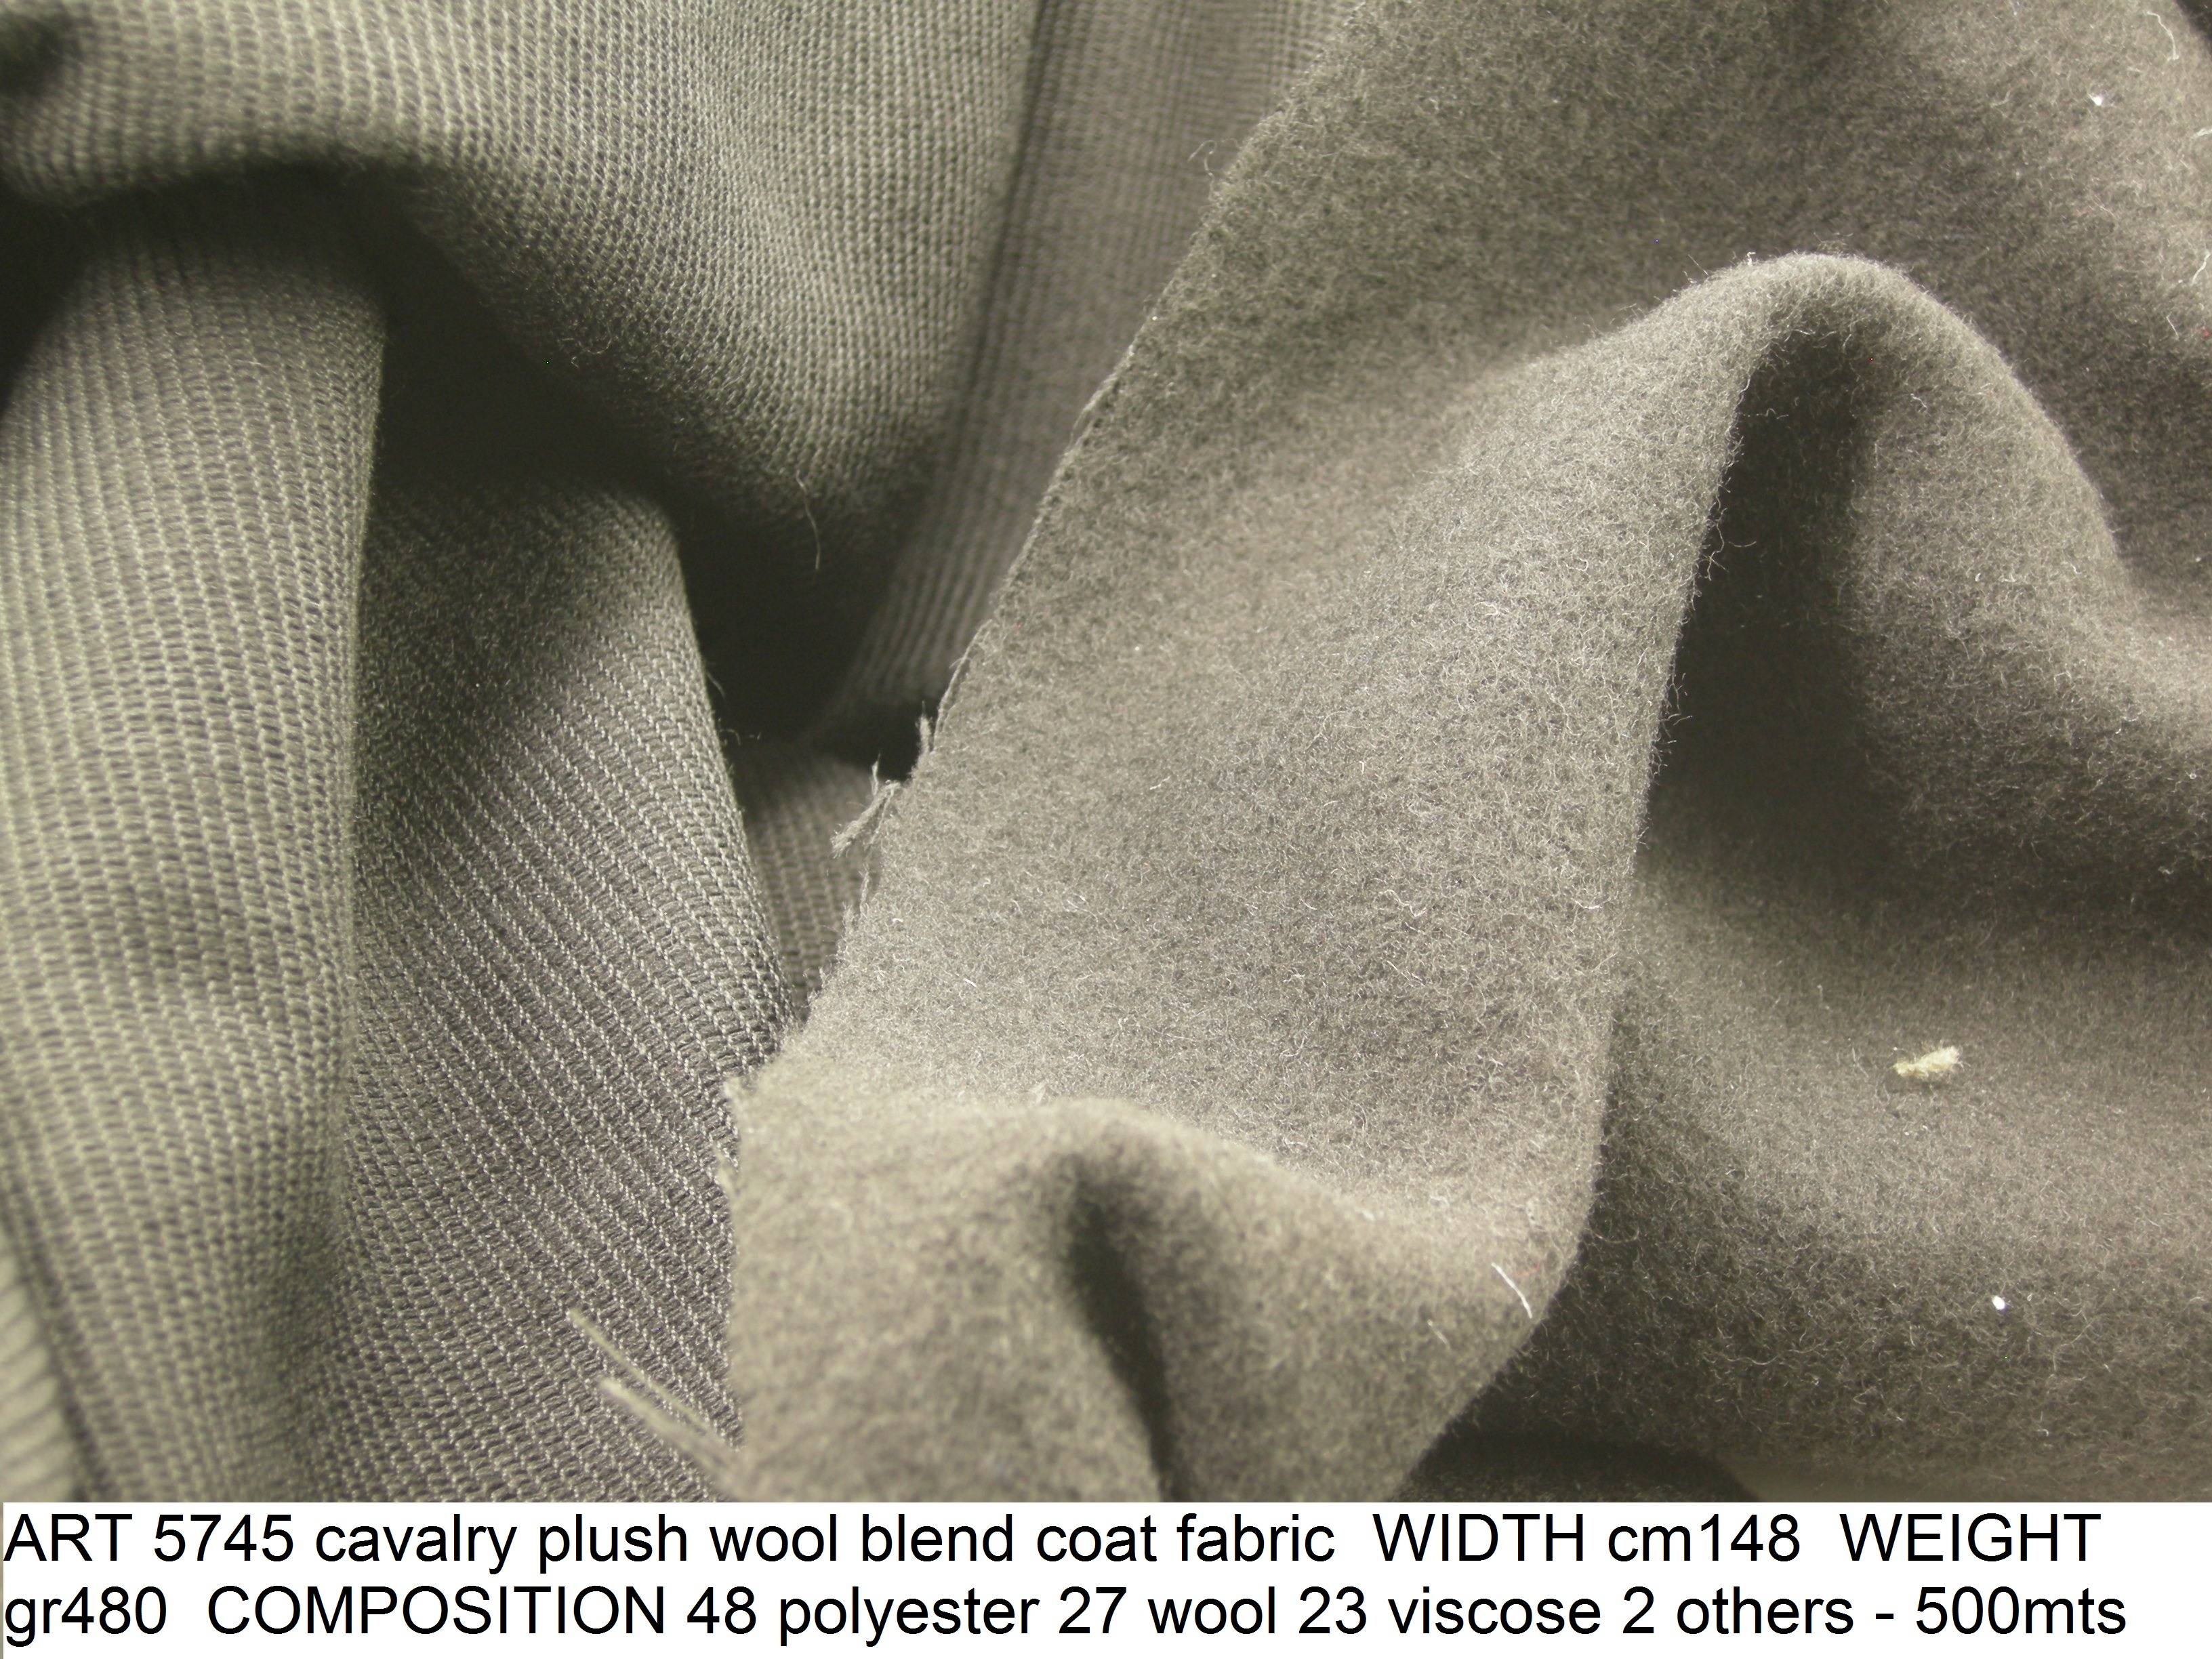 ART 5745 cavalry plush wool blend coat fabric WIDTH cm148 WEIGHT gr480 COMPOSITION 48 polyester 27 wool 23 viscose 2 others - 500mts